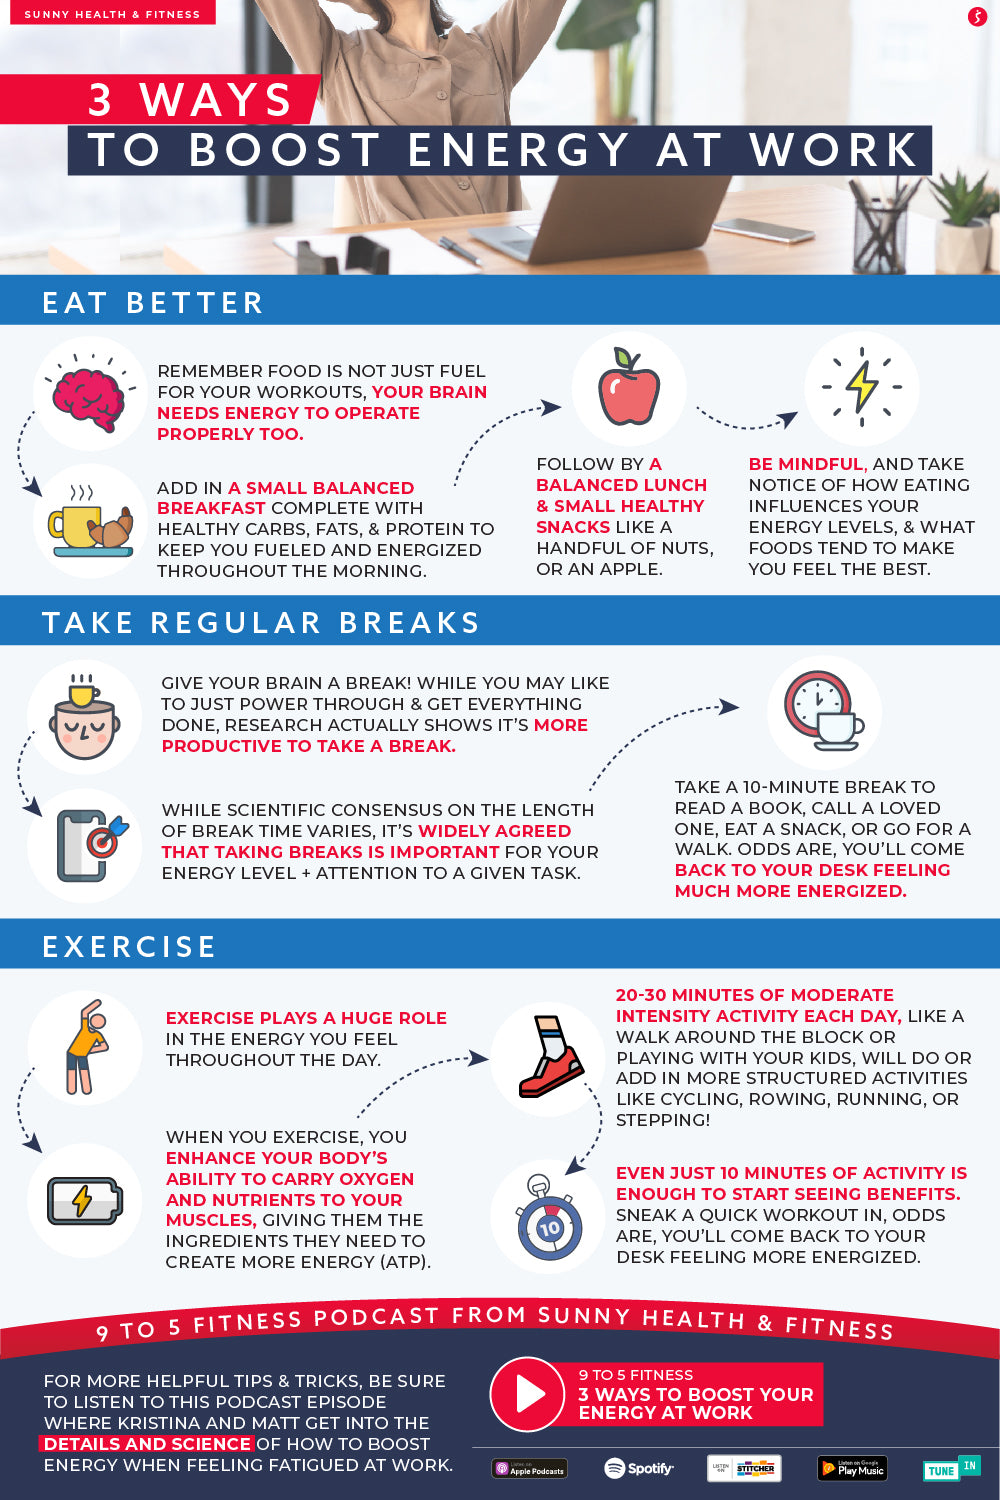 3 Ways to Boost Energy at Work Infographic